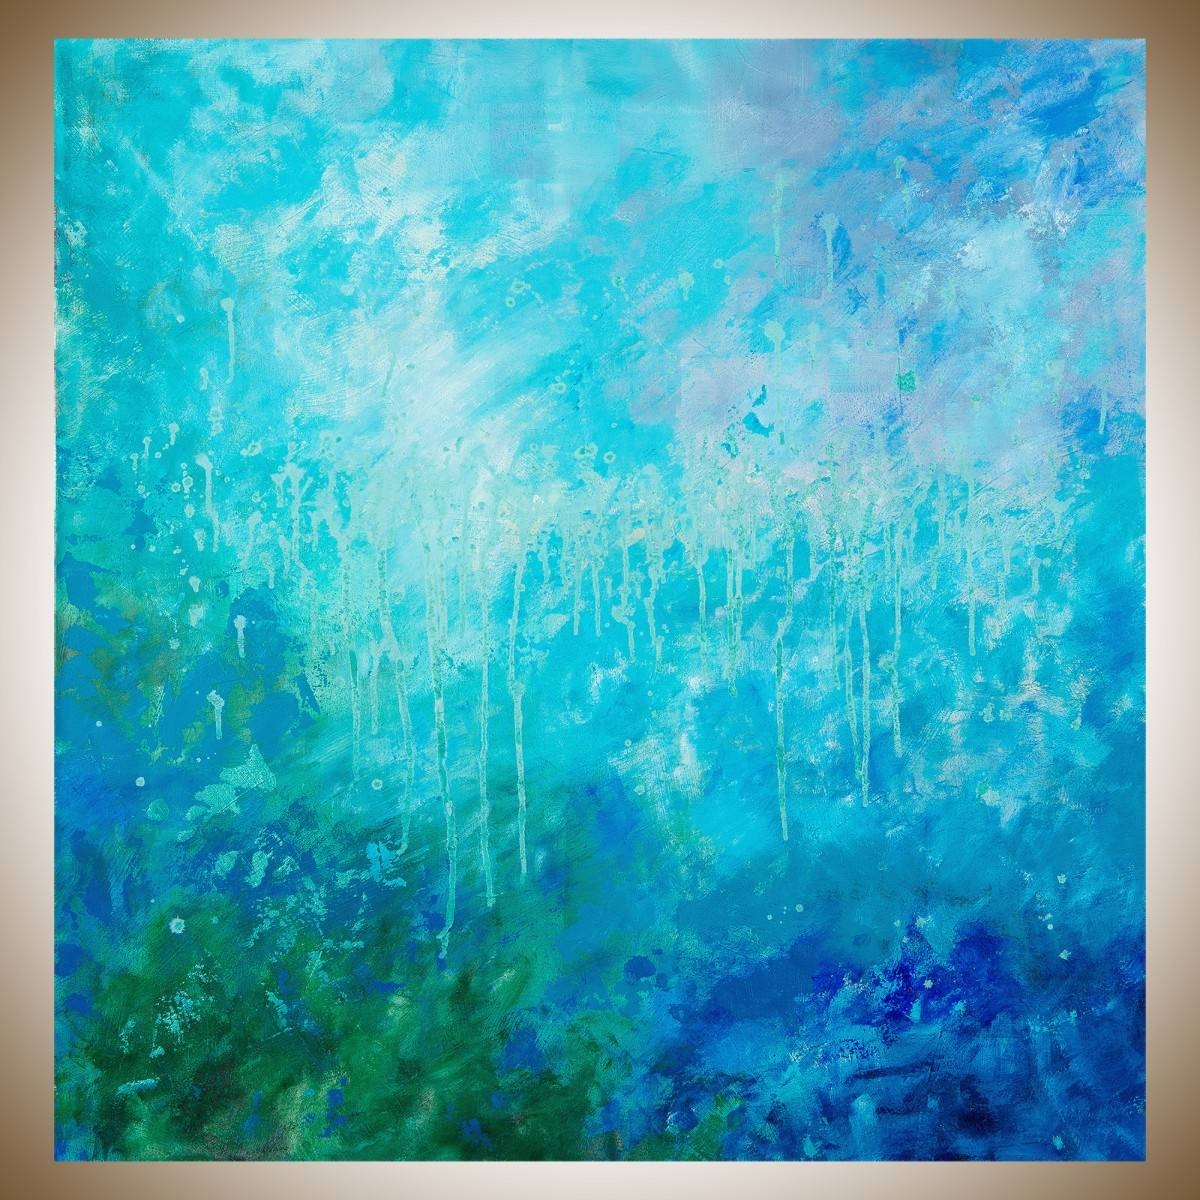 "November Showerqiqigallery 40""x40"" Un-Stretched Canvas inside Most Recent Blue And Green Wall Art"